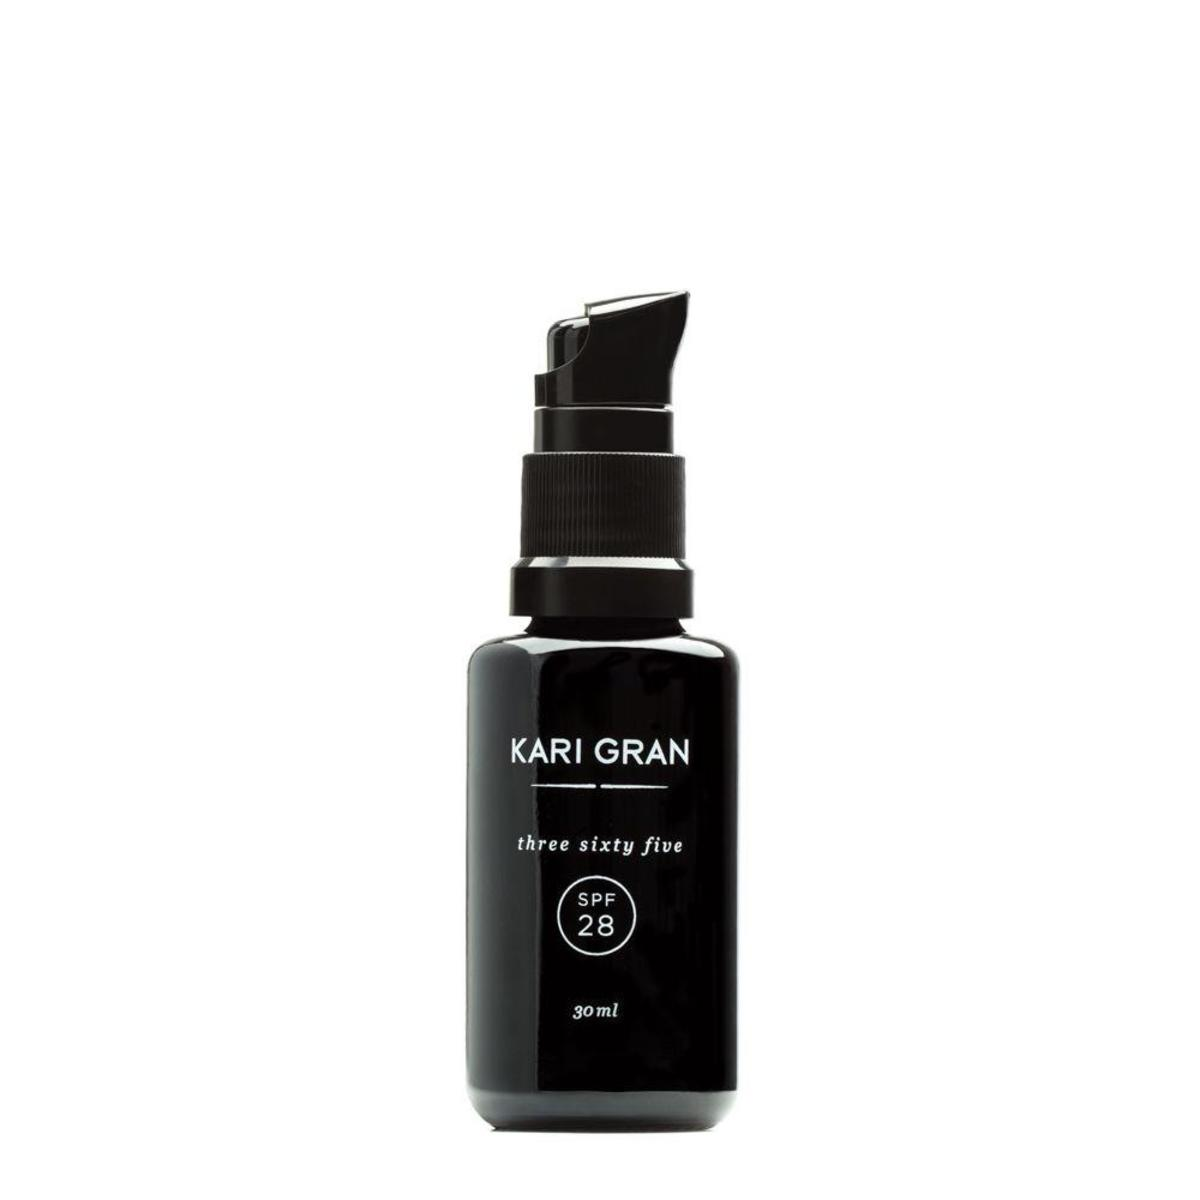 Kari Gran Three Sixty Five SPF 28